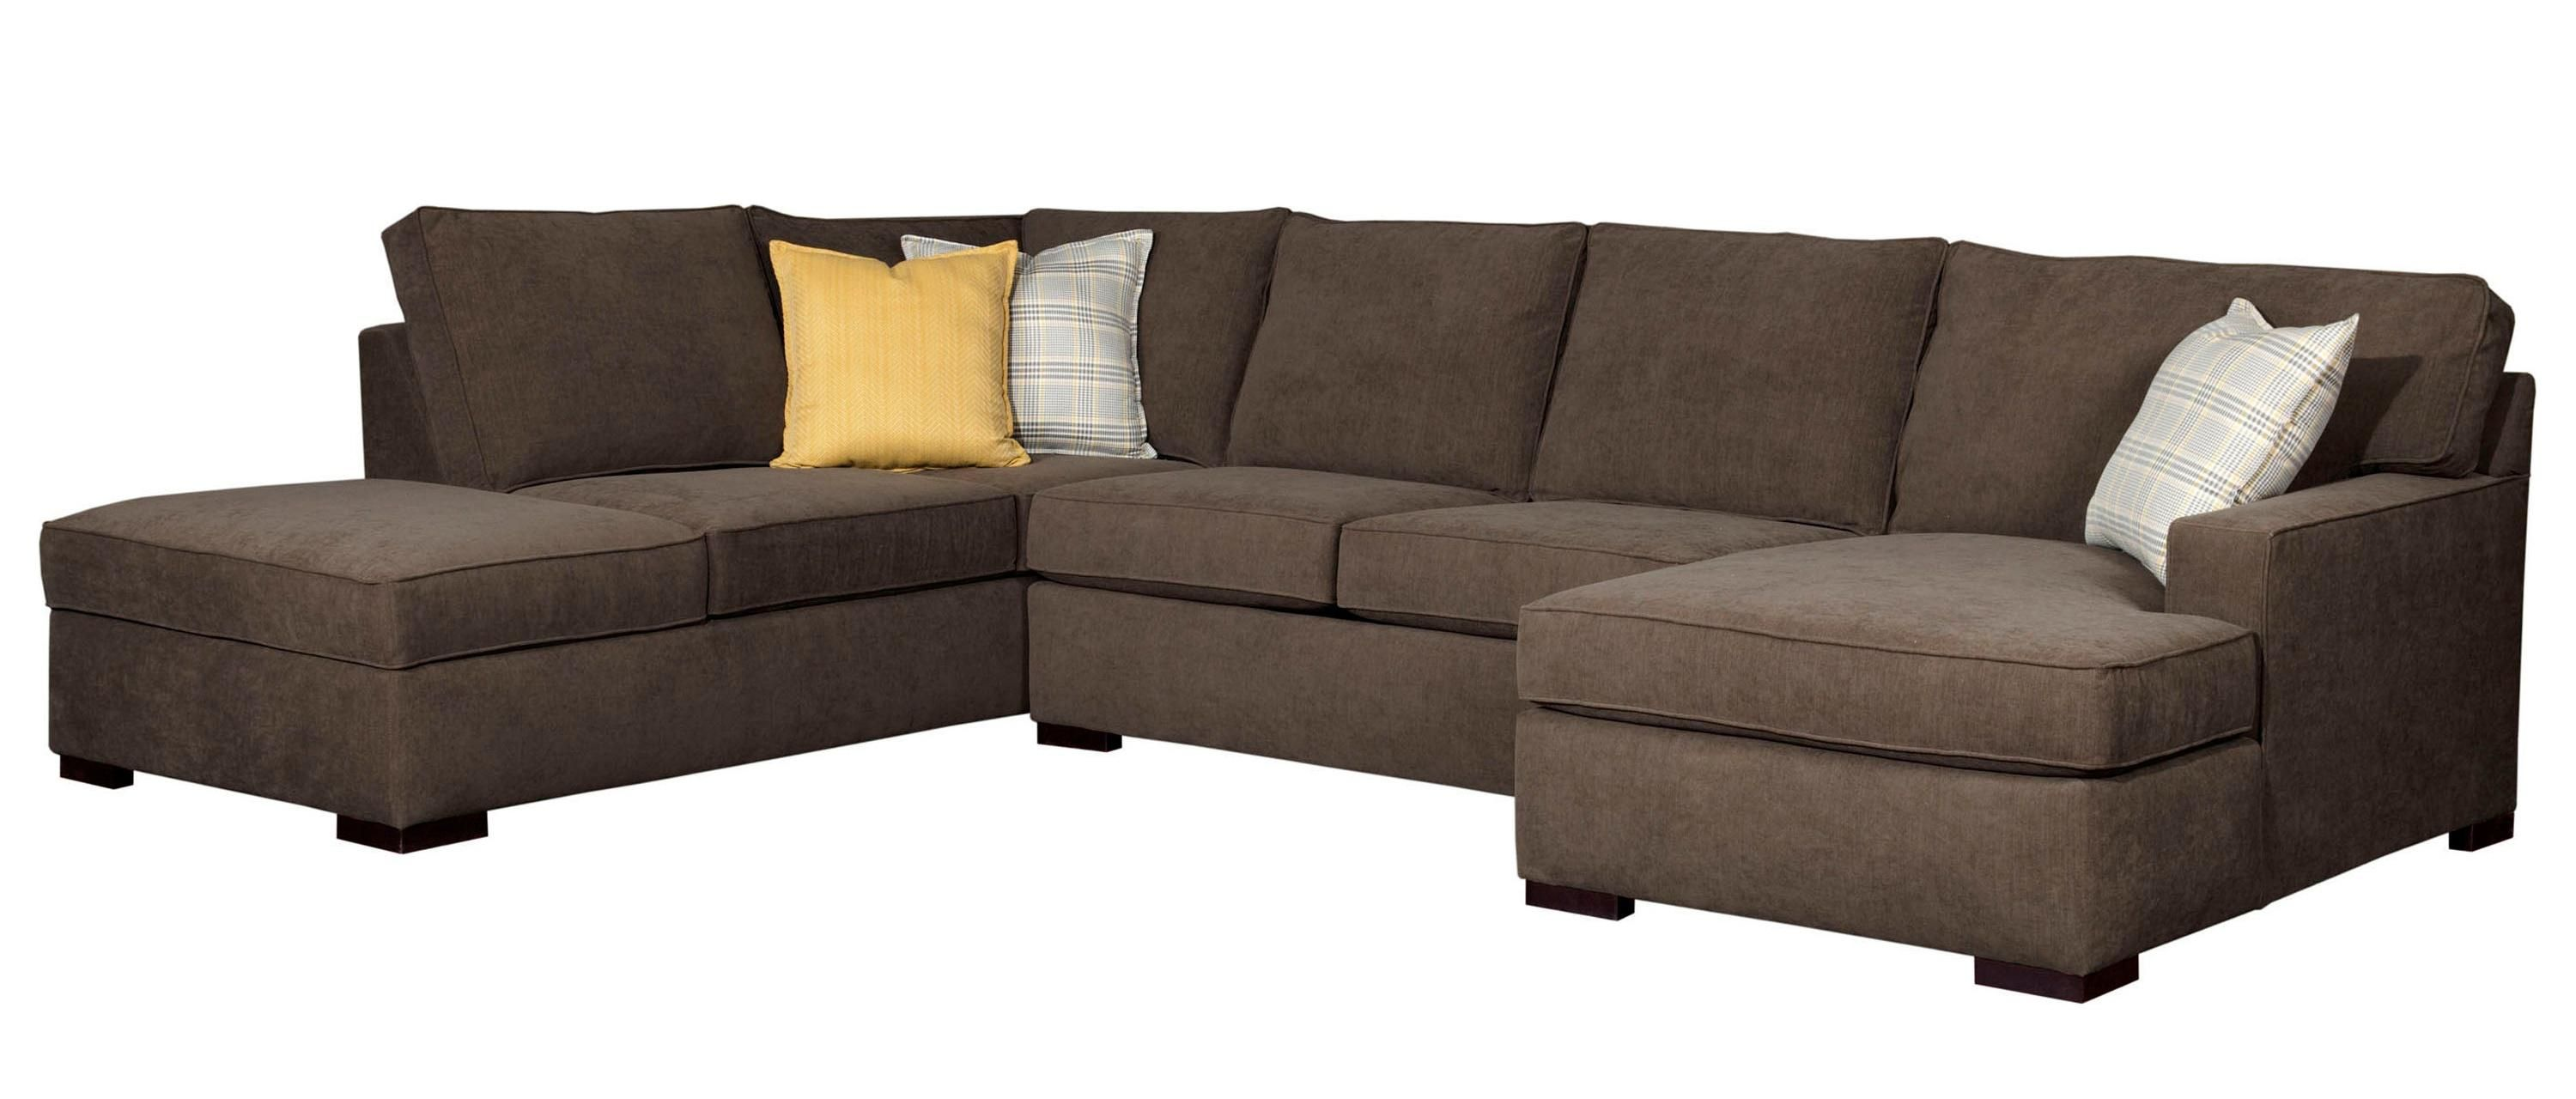 Raphael Contemporary Sectional Sofa with RAF corner